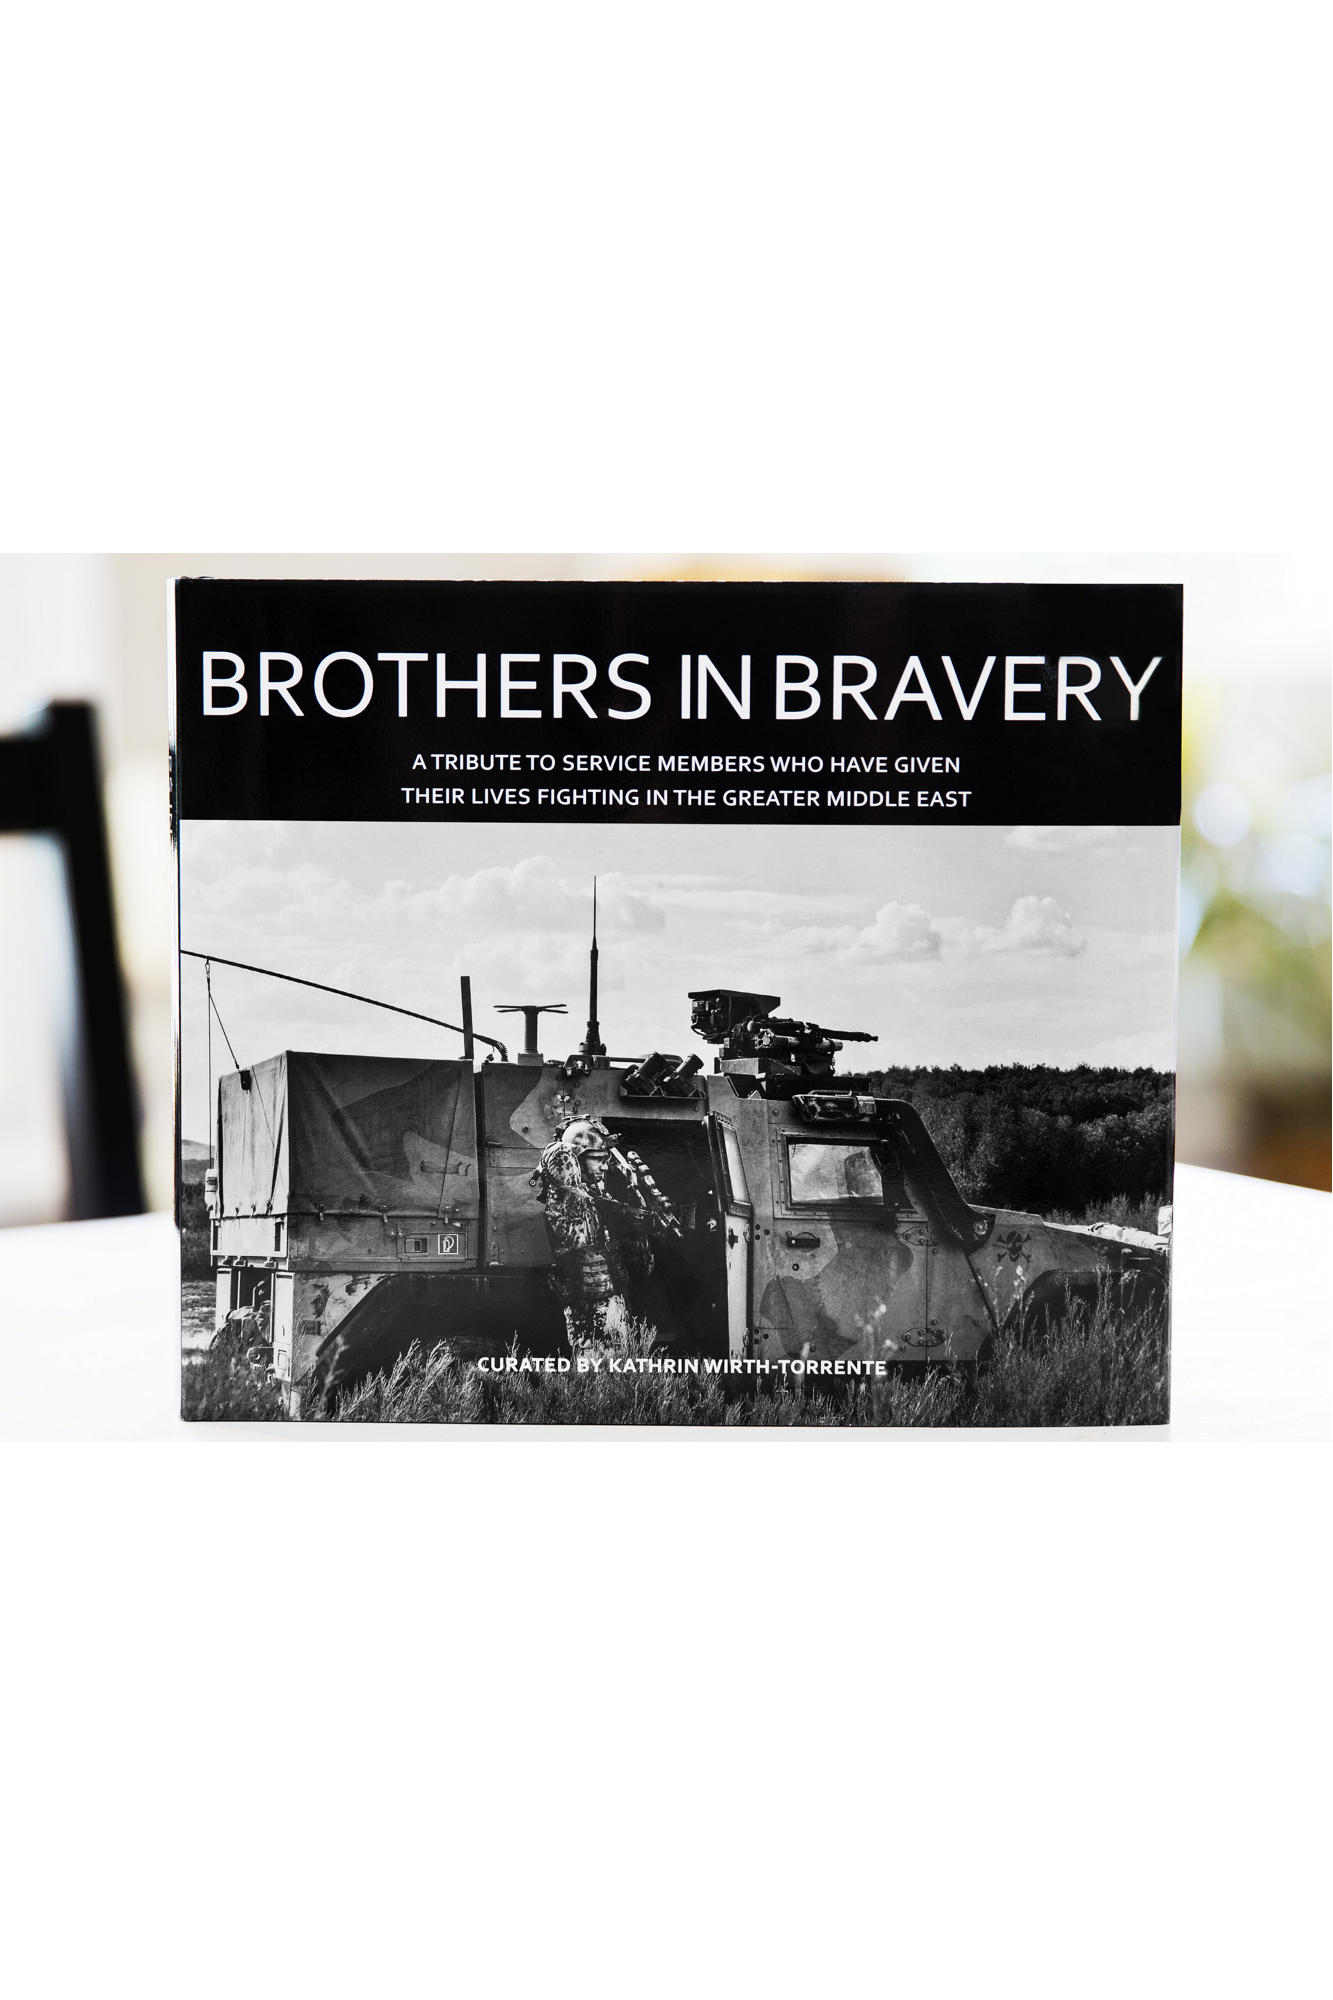 Brothers in Bravery Book - BIB001